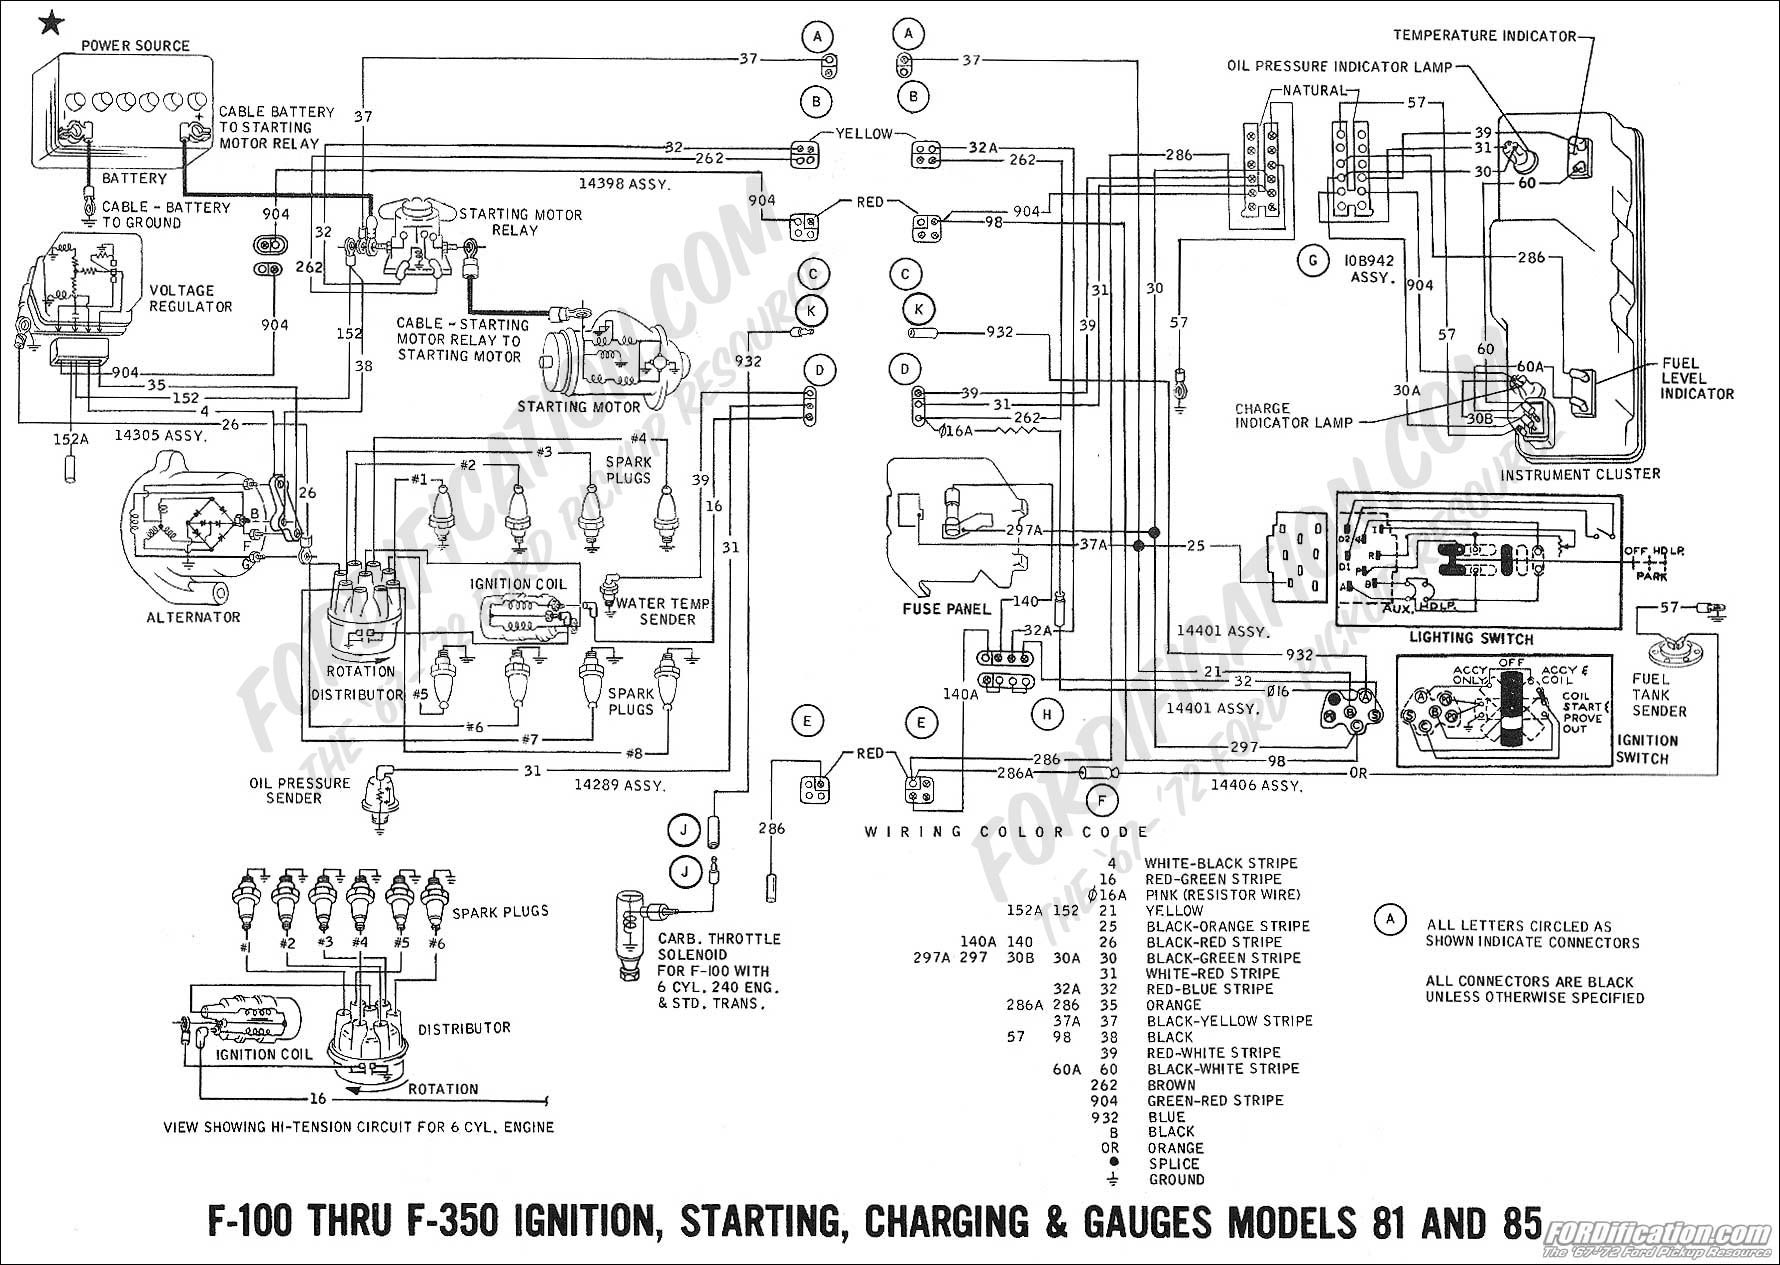 Chevy 3 4 L Engine Diagram Free Download | Wiring Diagram on